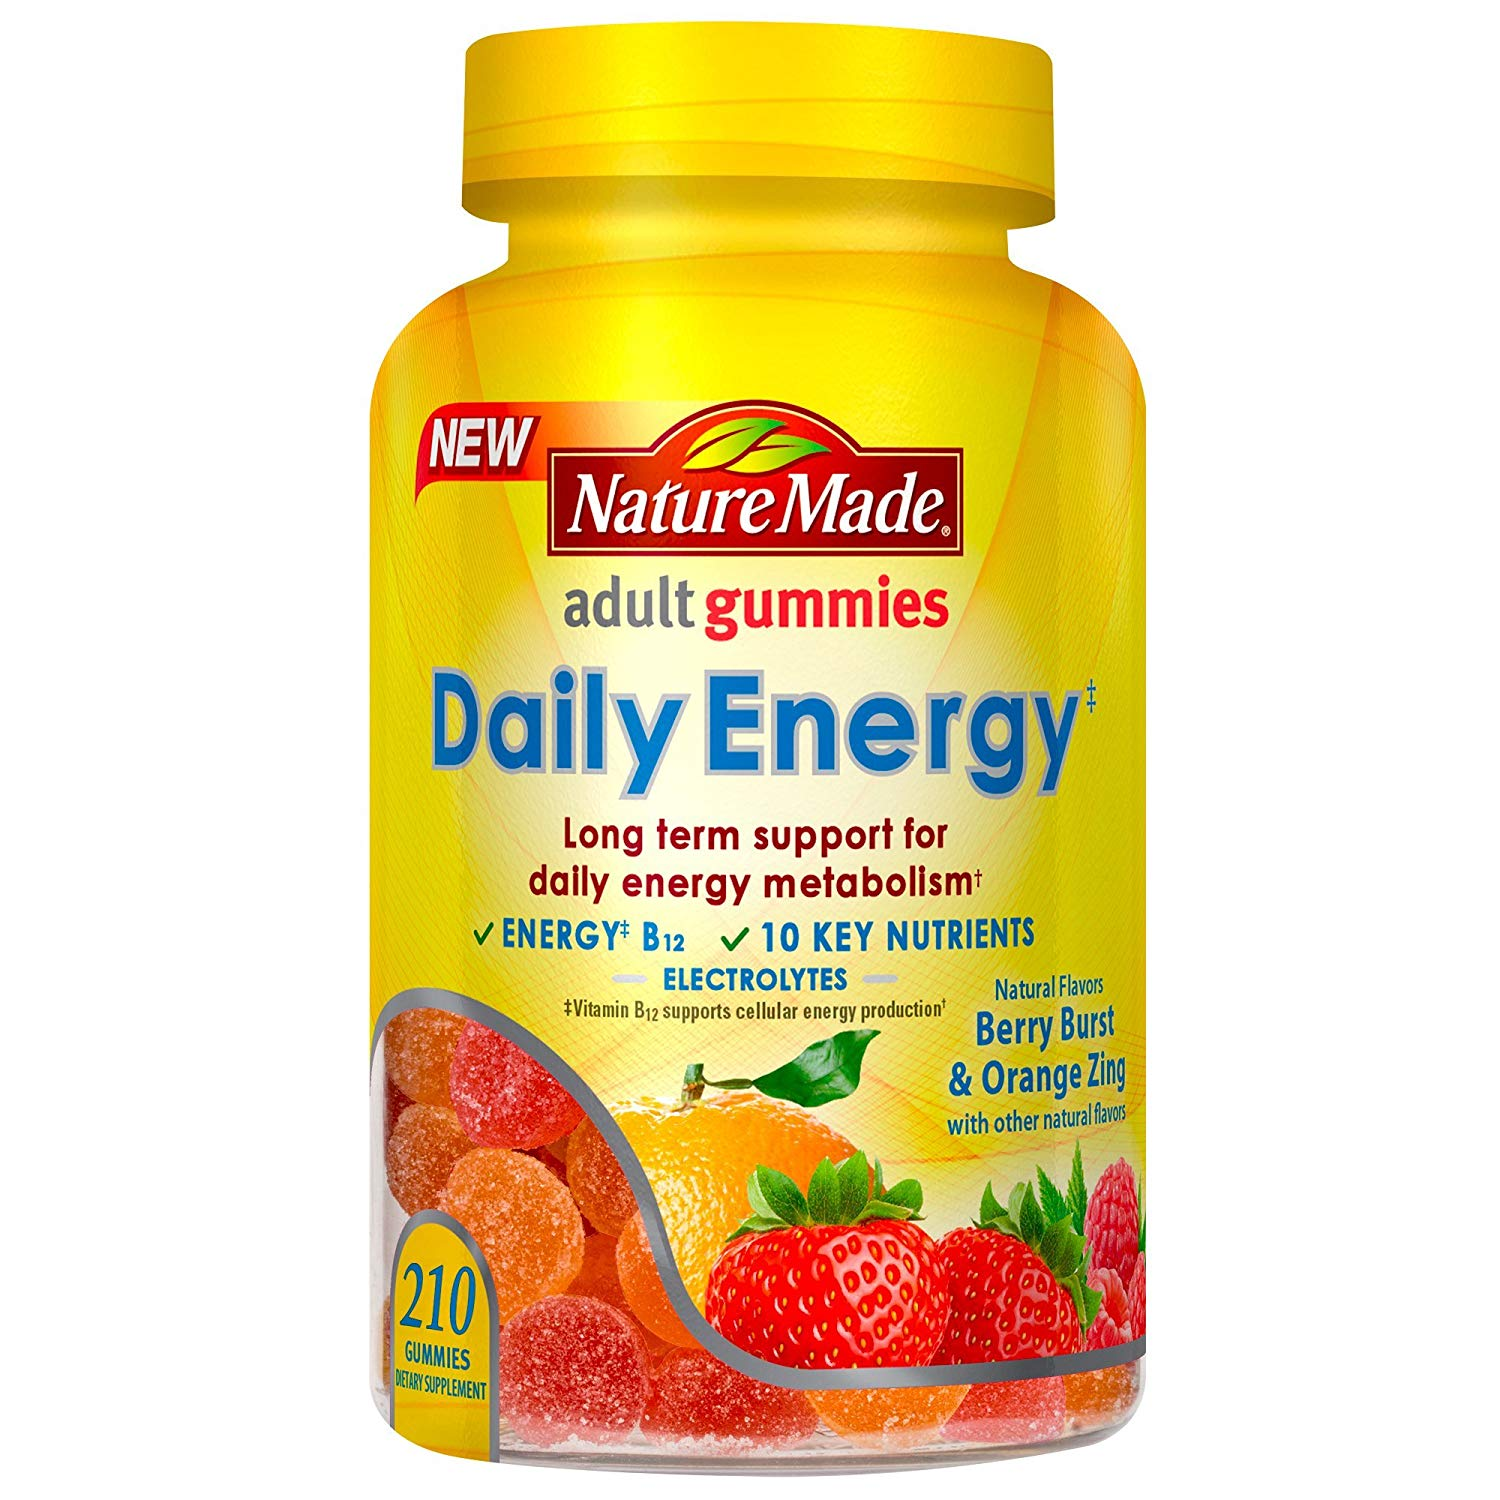 Daily Energy Support Gummy: B12 + 10 Key Nutrients, 70 Ct, Helps convert food to cellular energy. By Nature Made